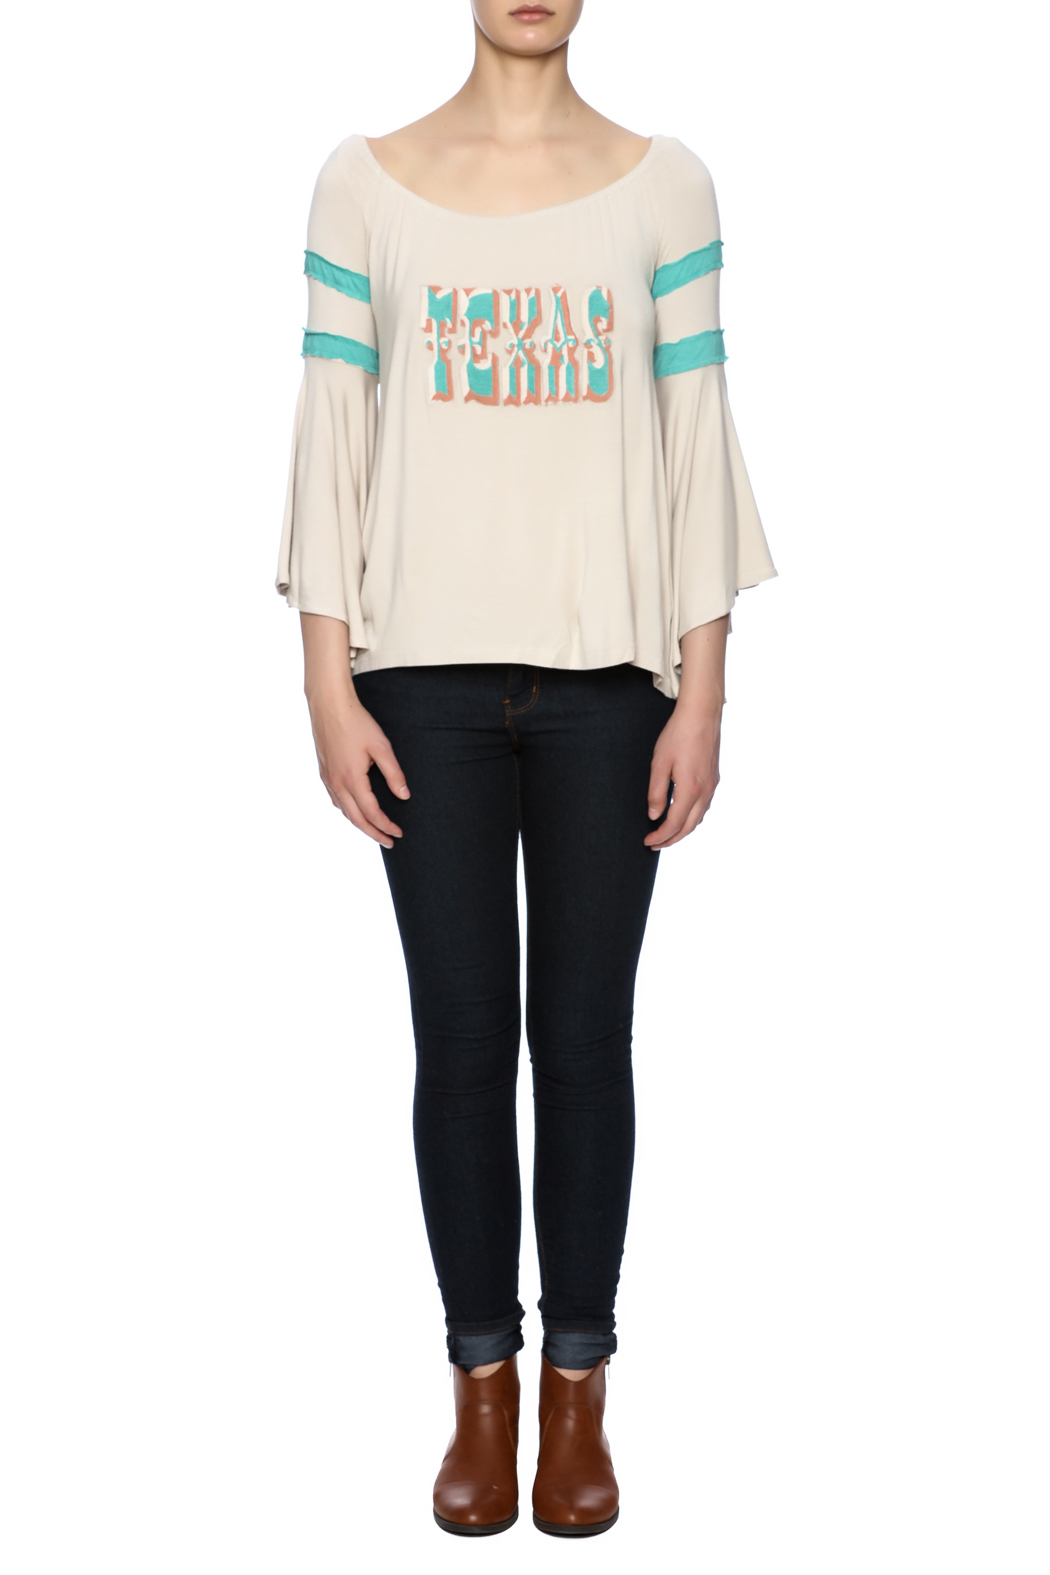 Judith March Texas Embroidered Top - Front Full Image